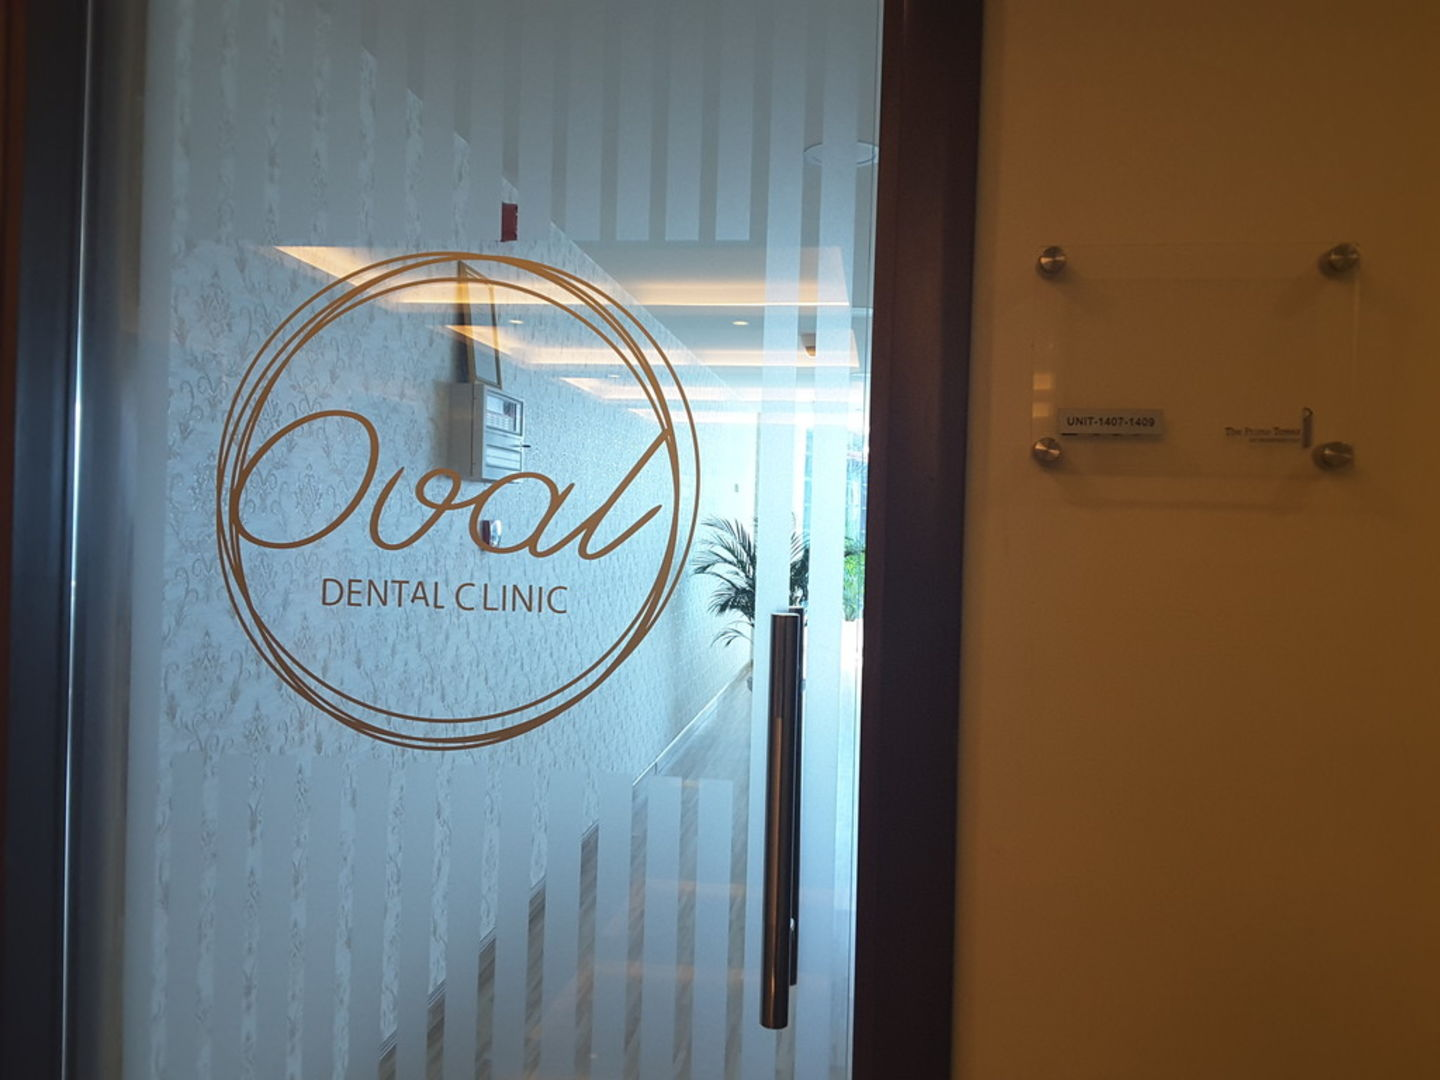 HiDubai-business-oval-dental-clinic-beauty-wellness-health-specialty-clinics-business-bay-dubai-2